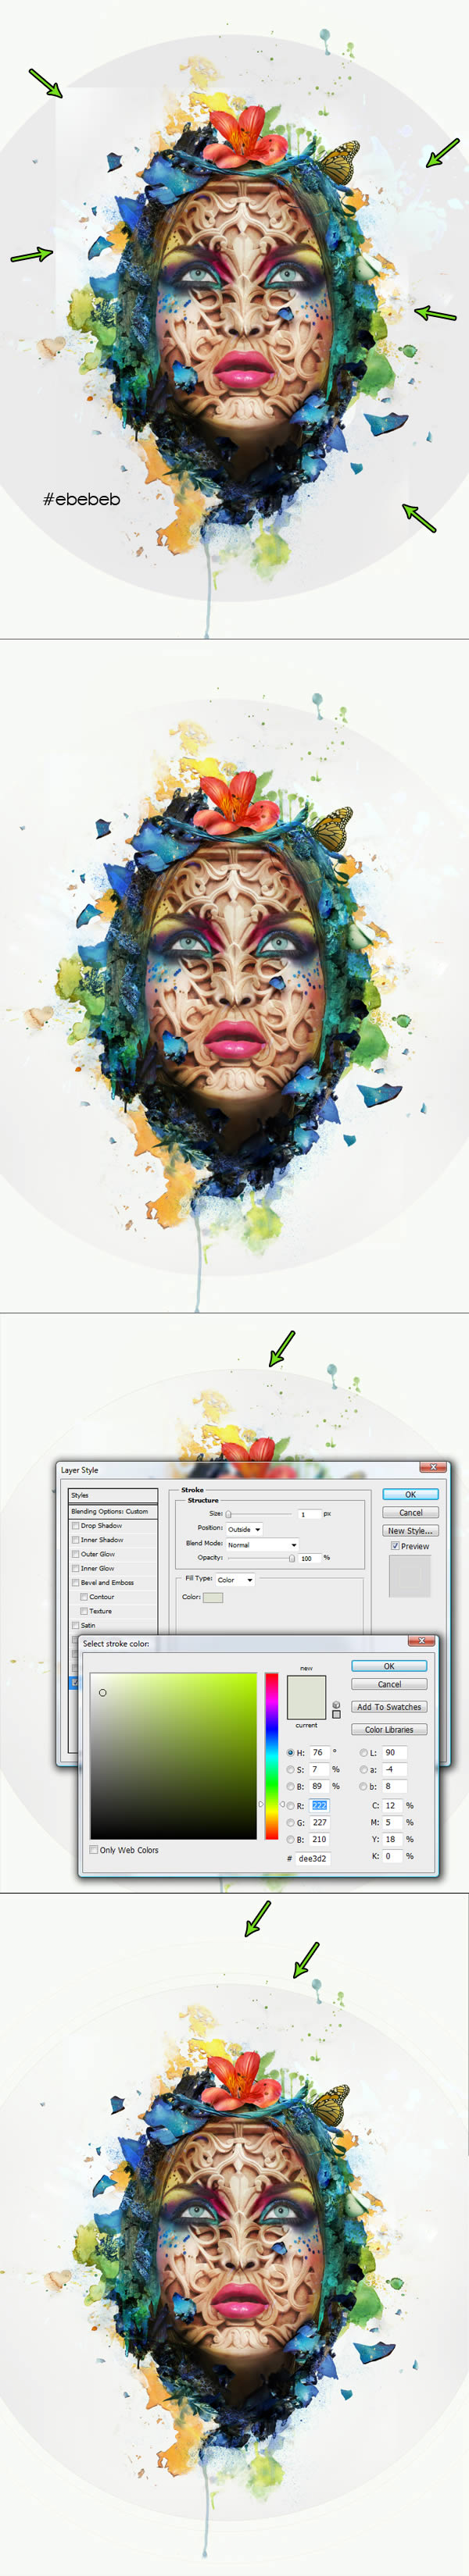 How to Create a Beautiful Abstract Portrait in Photoshop